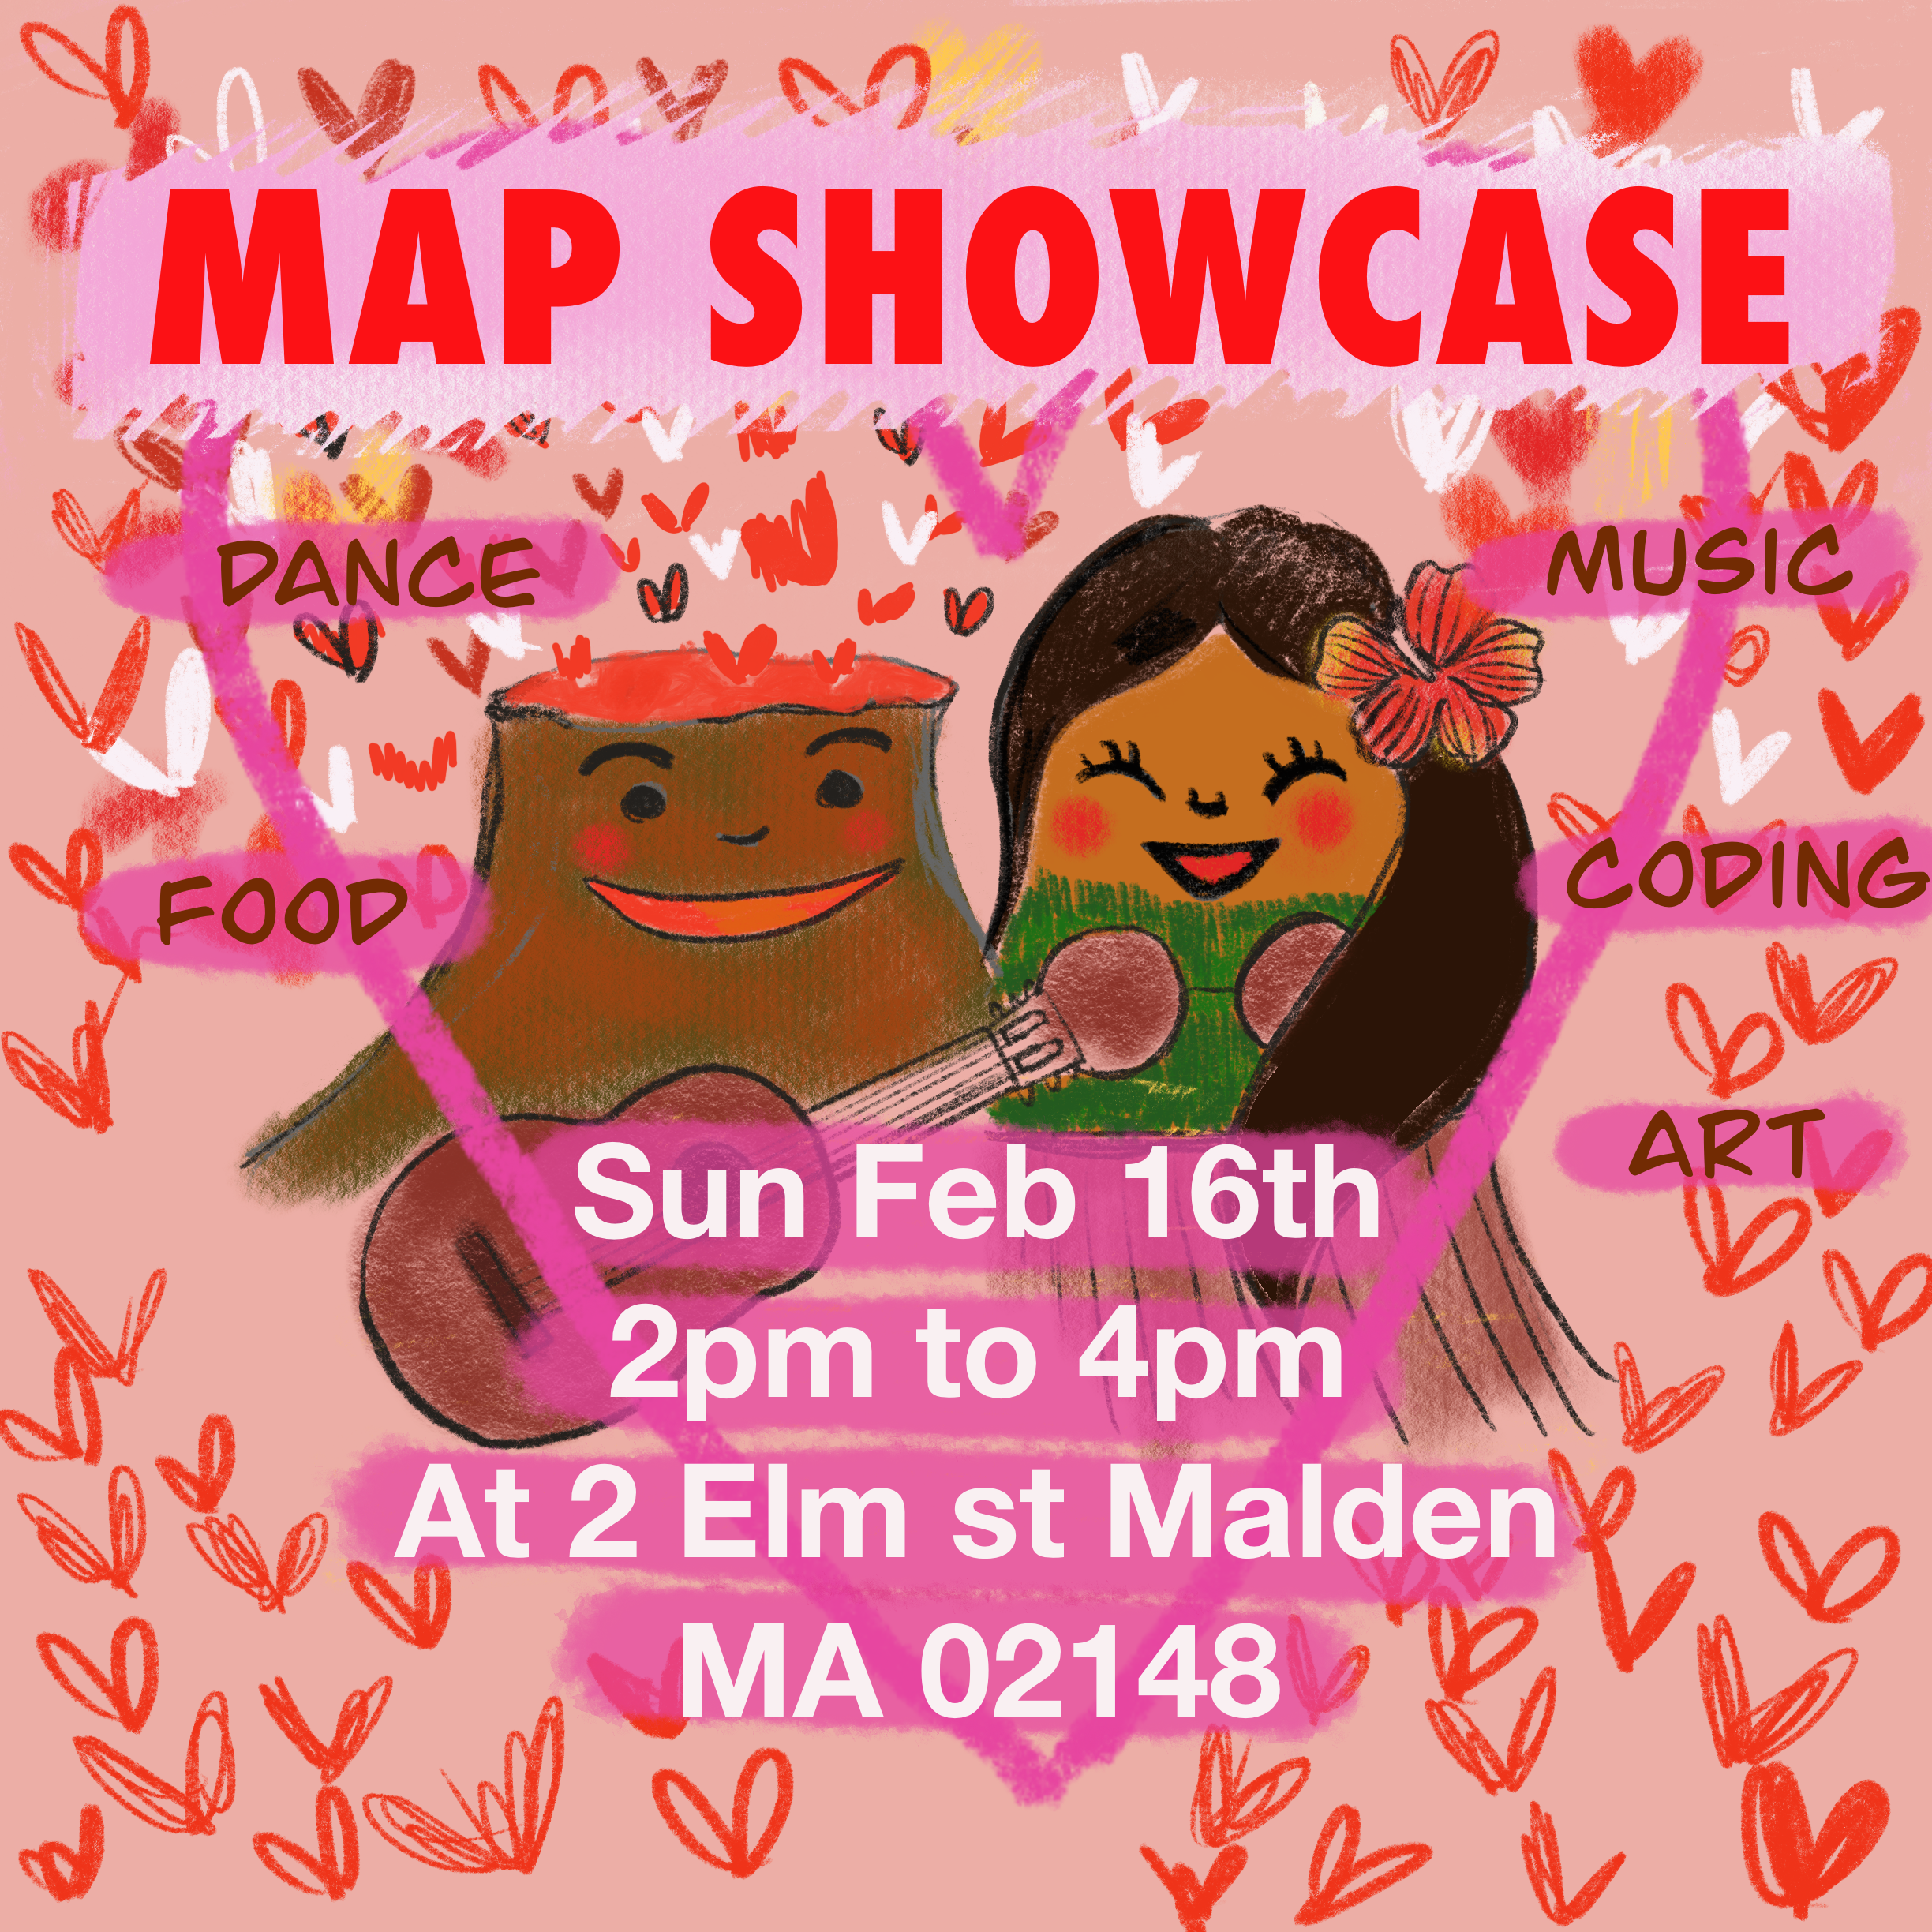 Flier for February Showcase